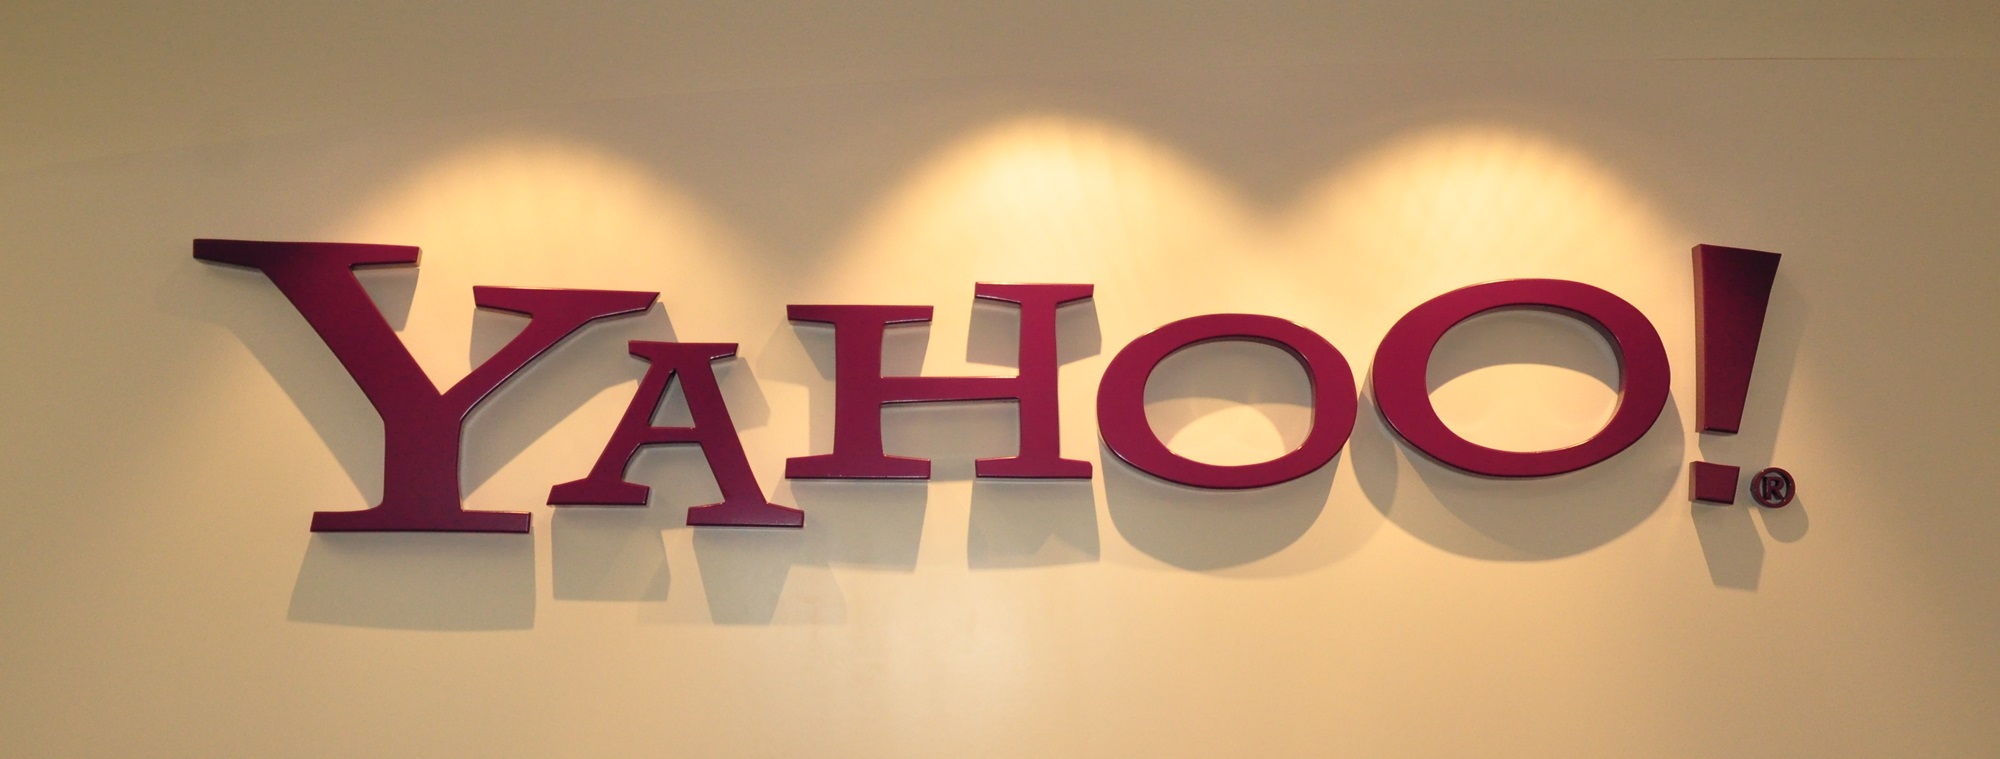 Yahoo is extending its HTTPS encryption to cover Yahoo Contacts and Profile APIs